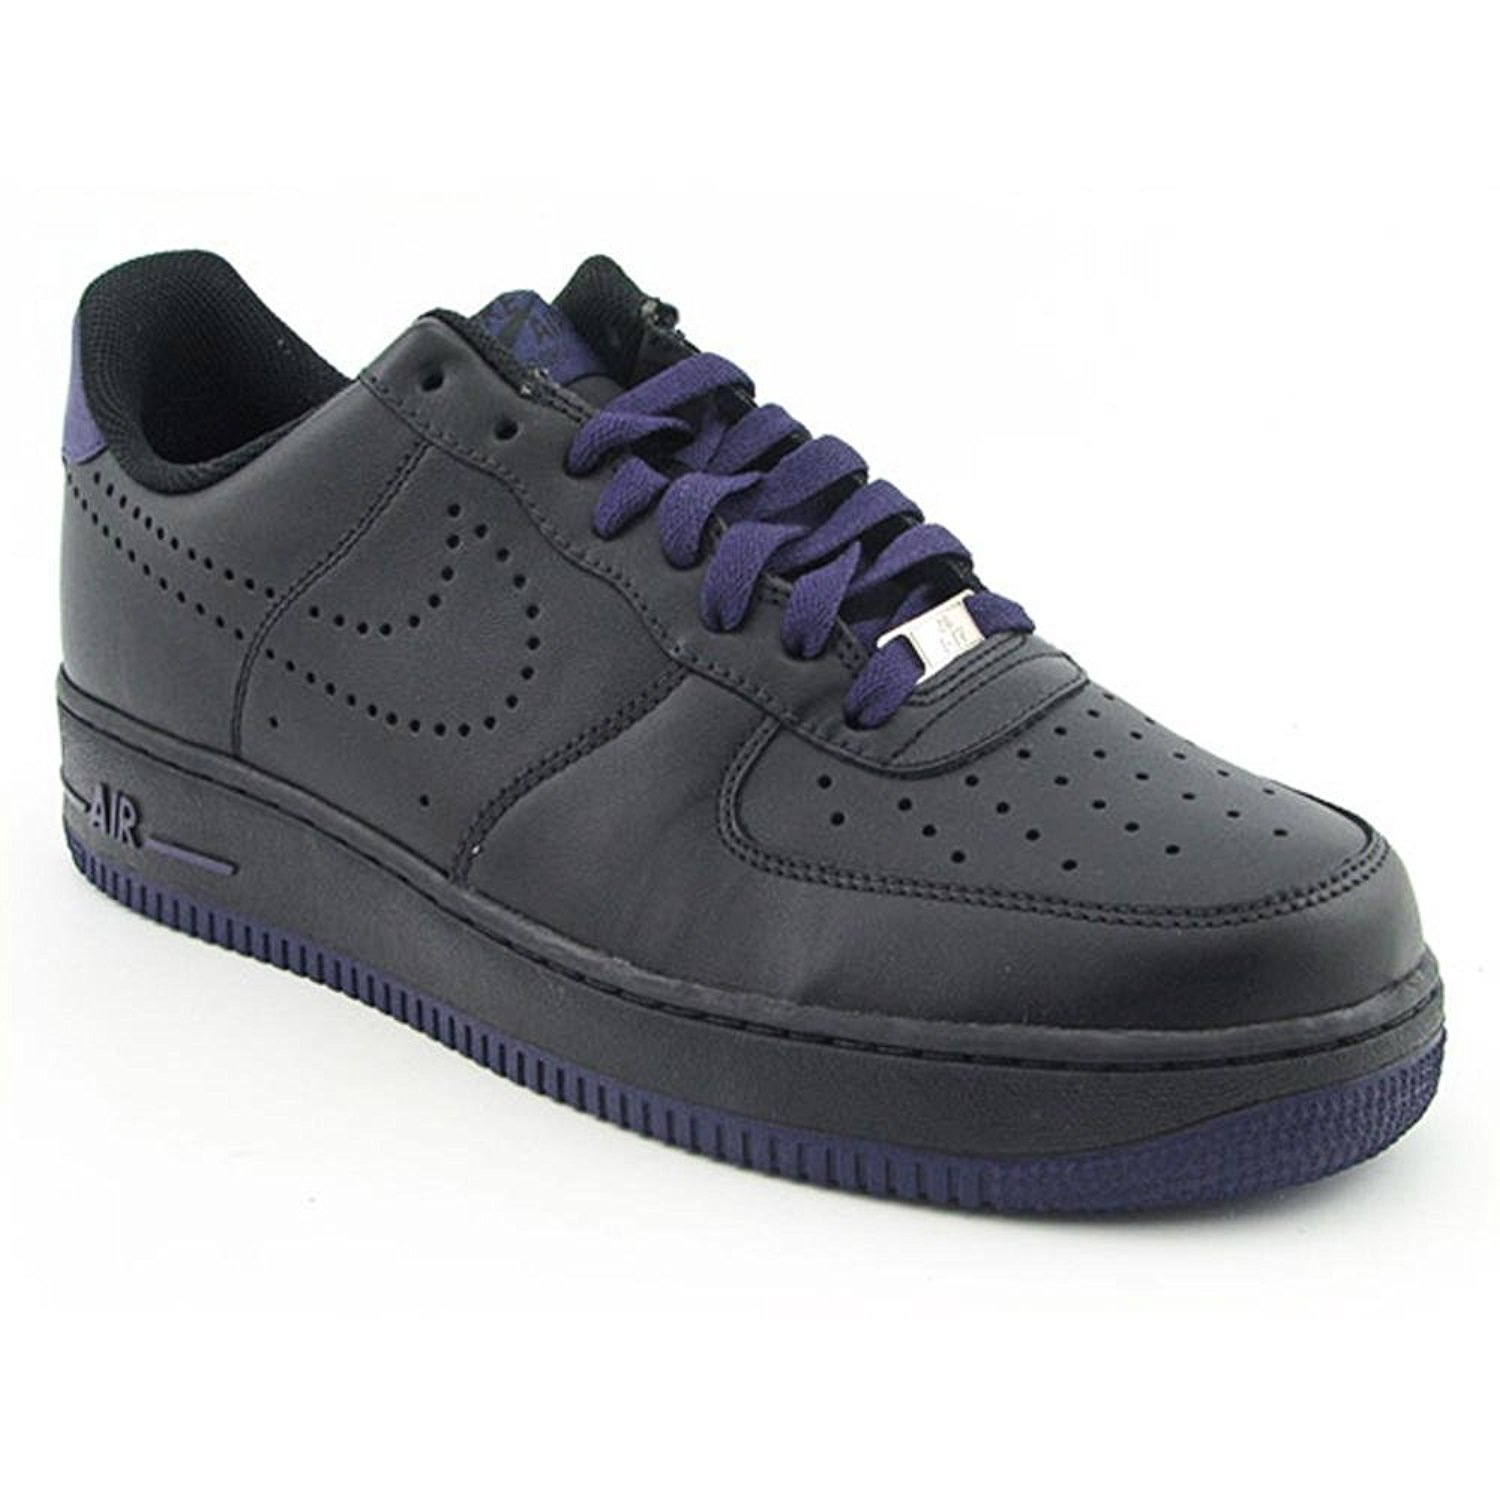 Nike Air Force 1 '07 (Style # 315122-028)